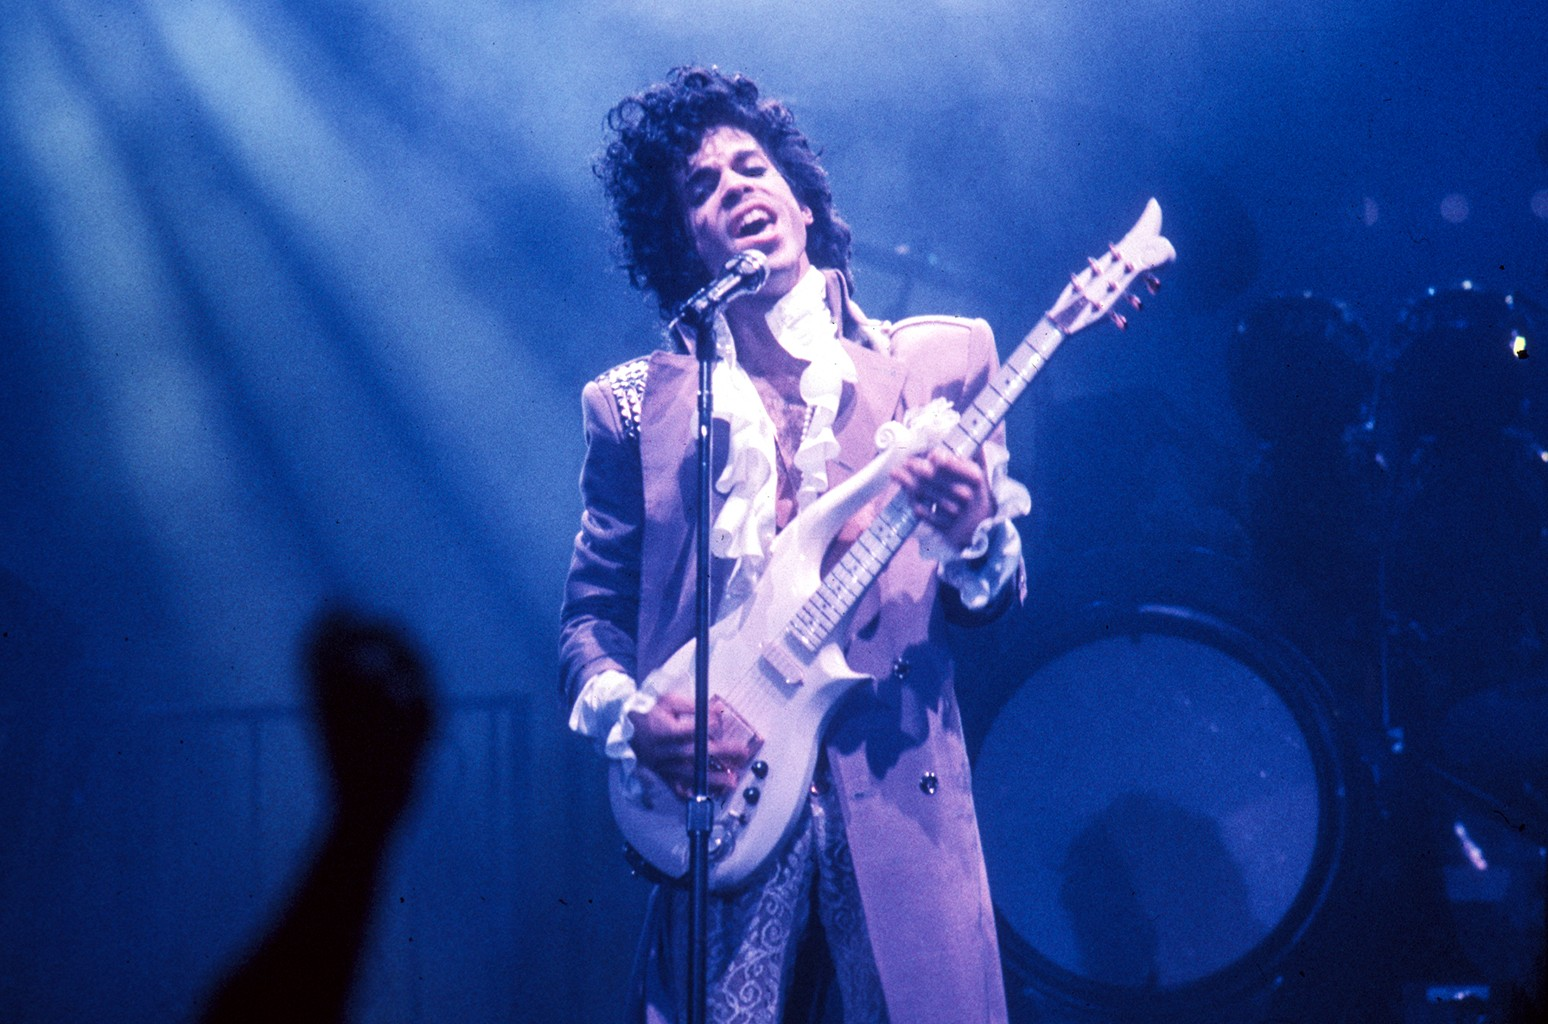 Prince performs live at the Fabulous Forum on Feb. 19, 1985 in Inglewood, Calif.